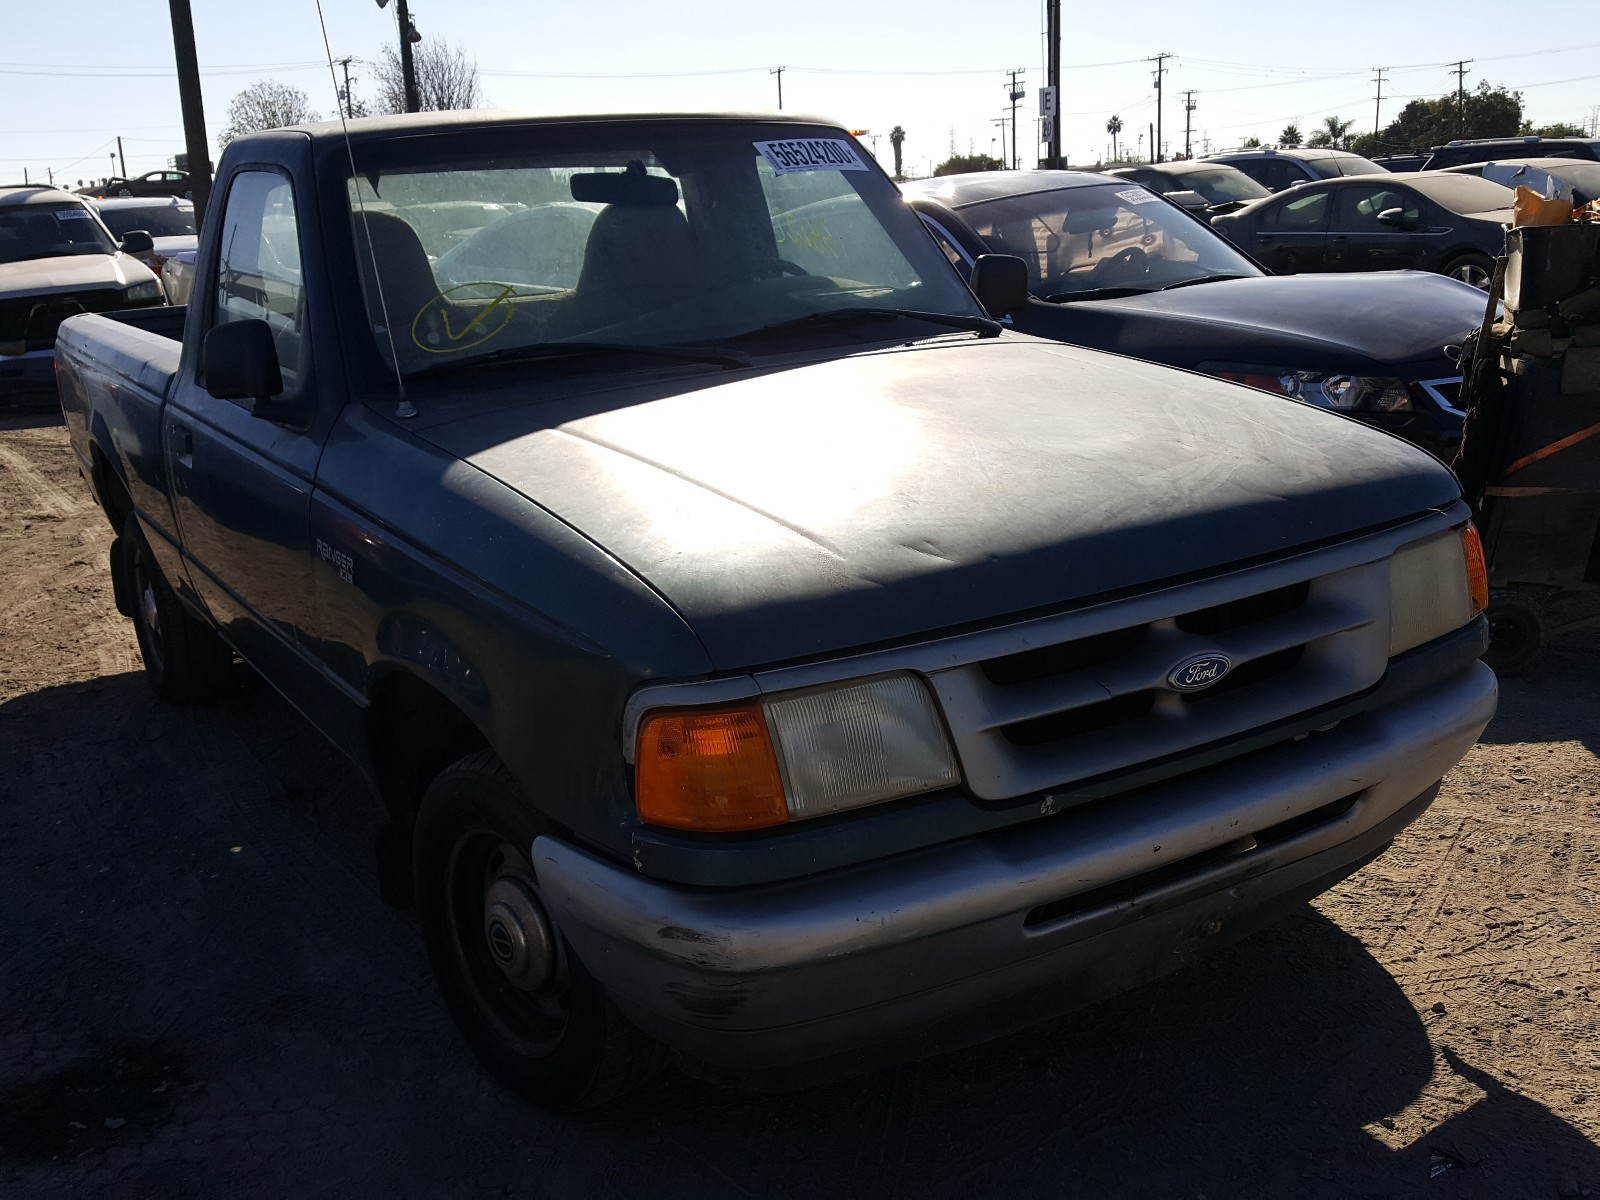 1996 FORD RANGER - 1FTCR10A0TPB45777